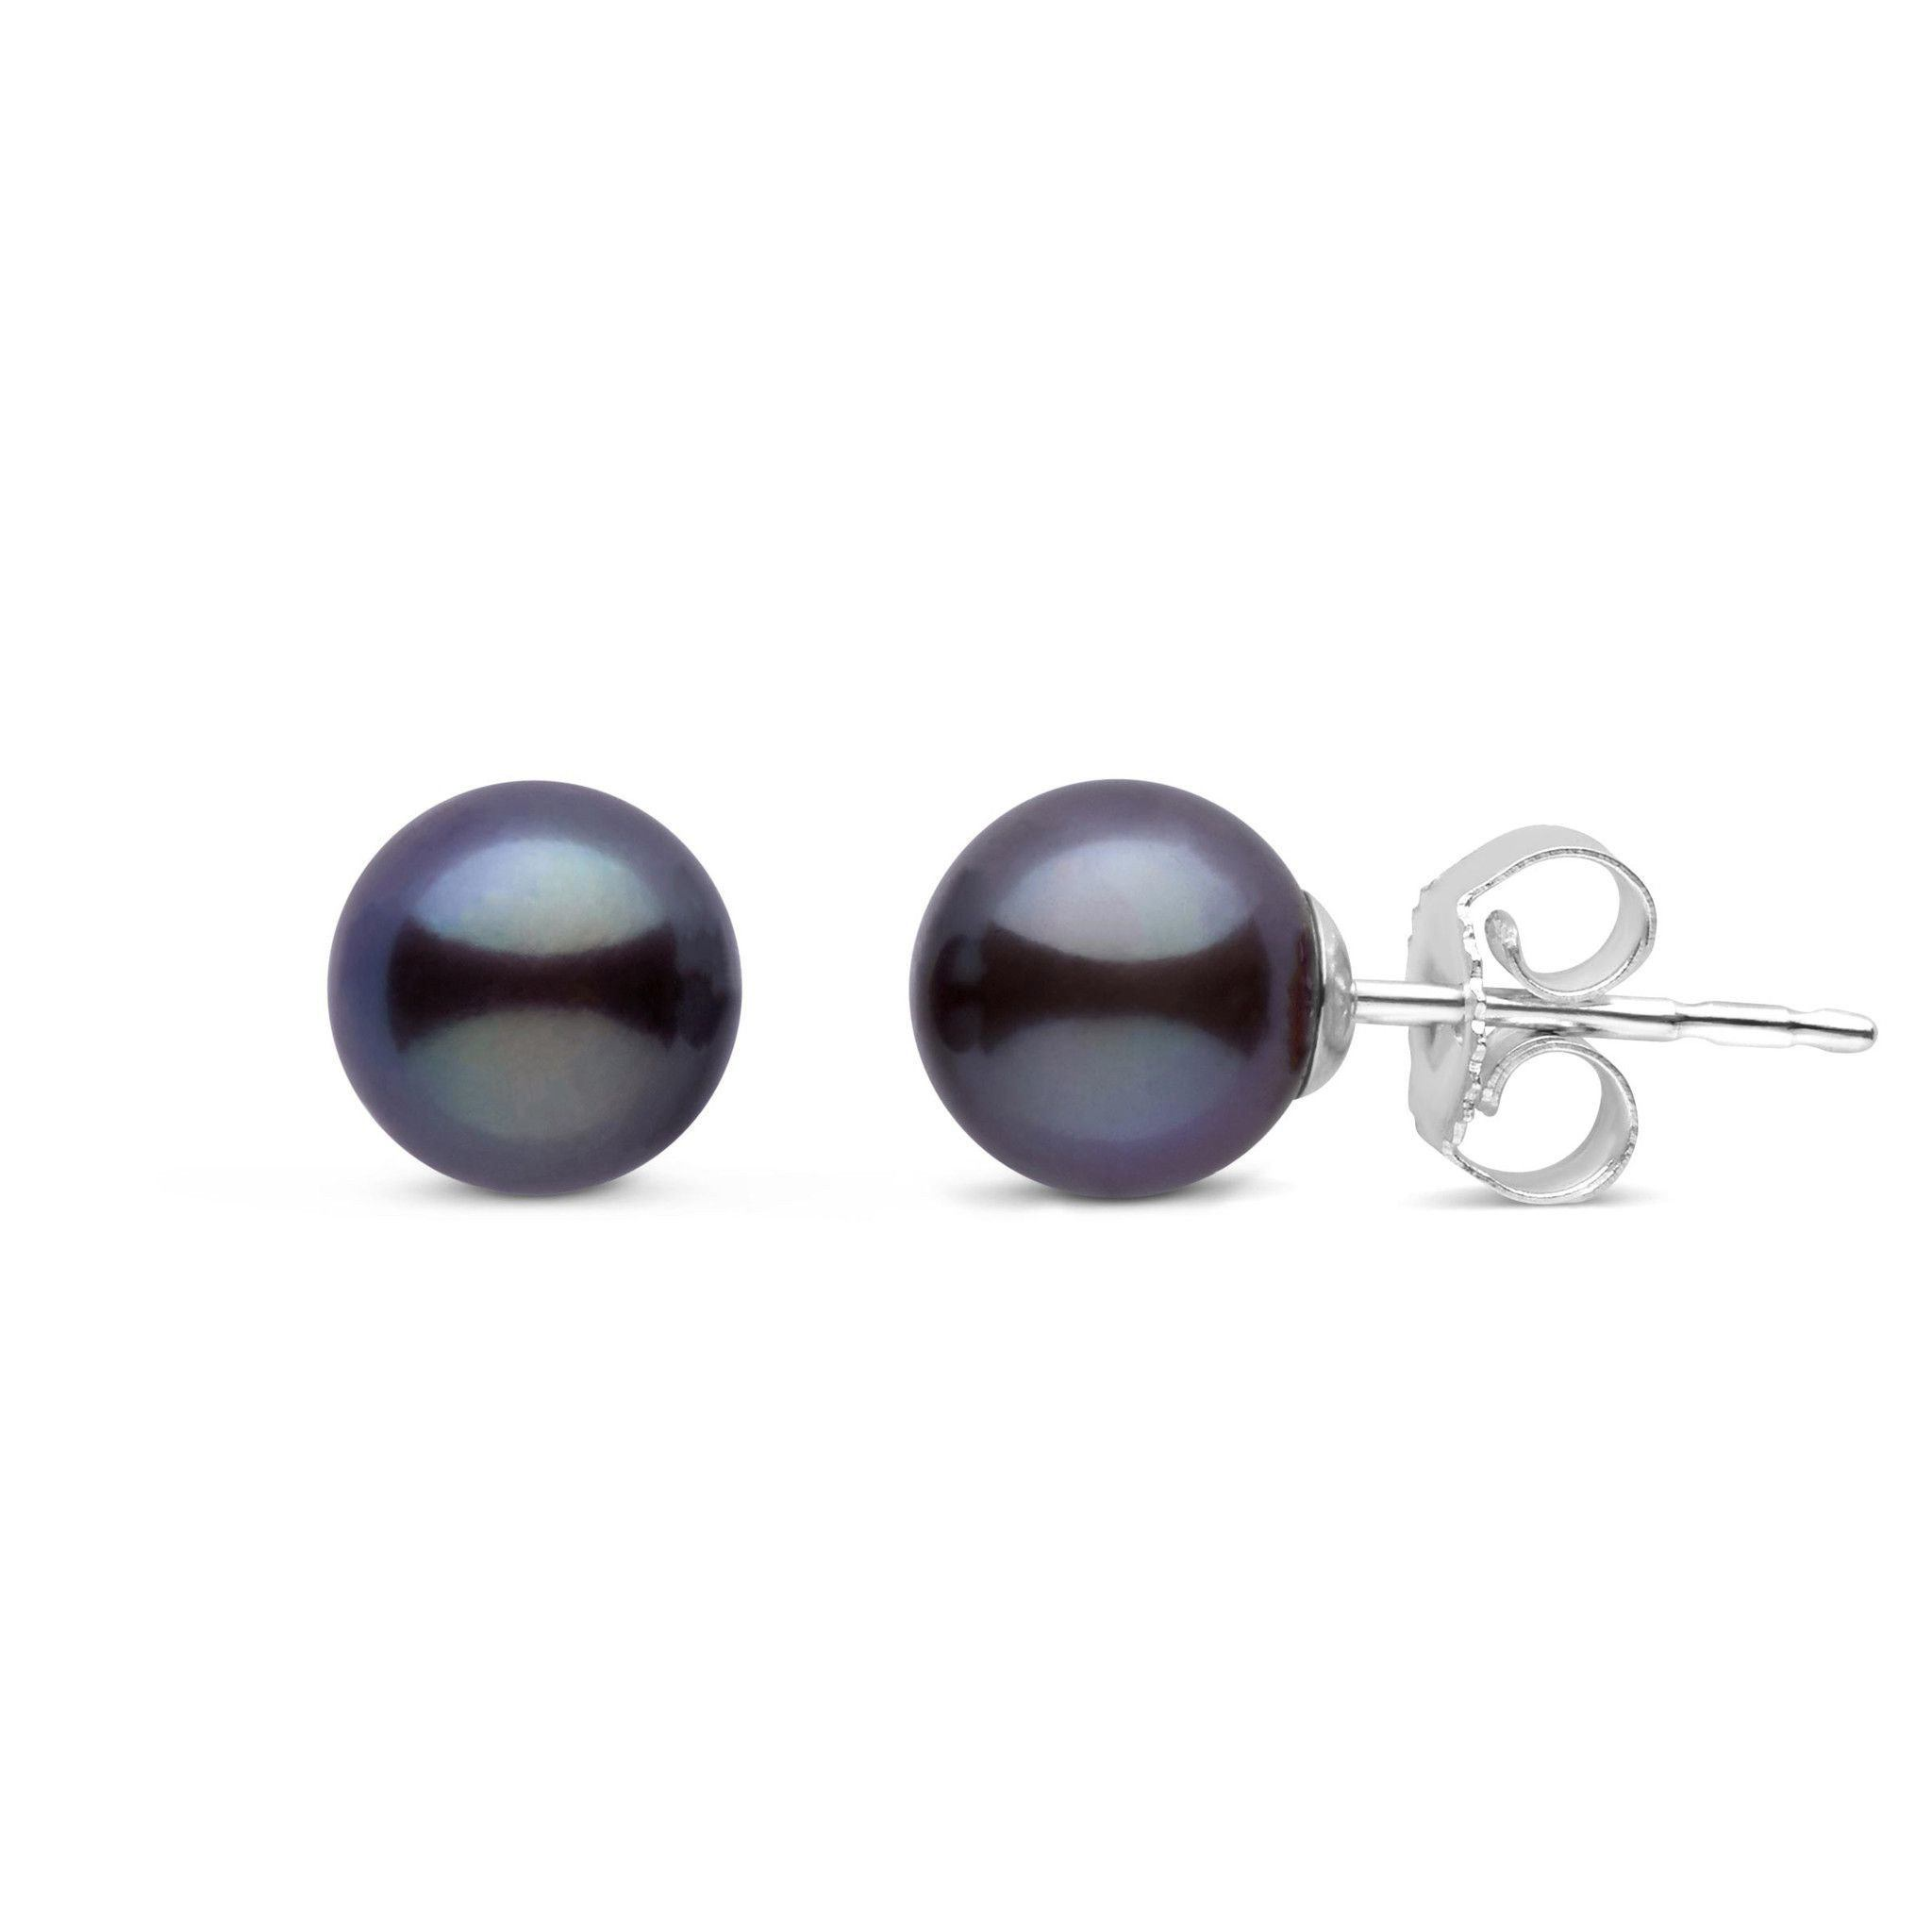 6.5-7.0 mm AAA Black Freshwater Round Pearl Stud Earrings